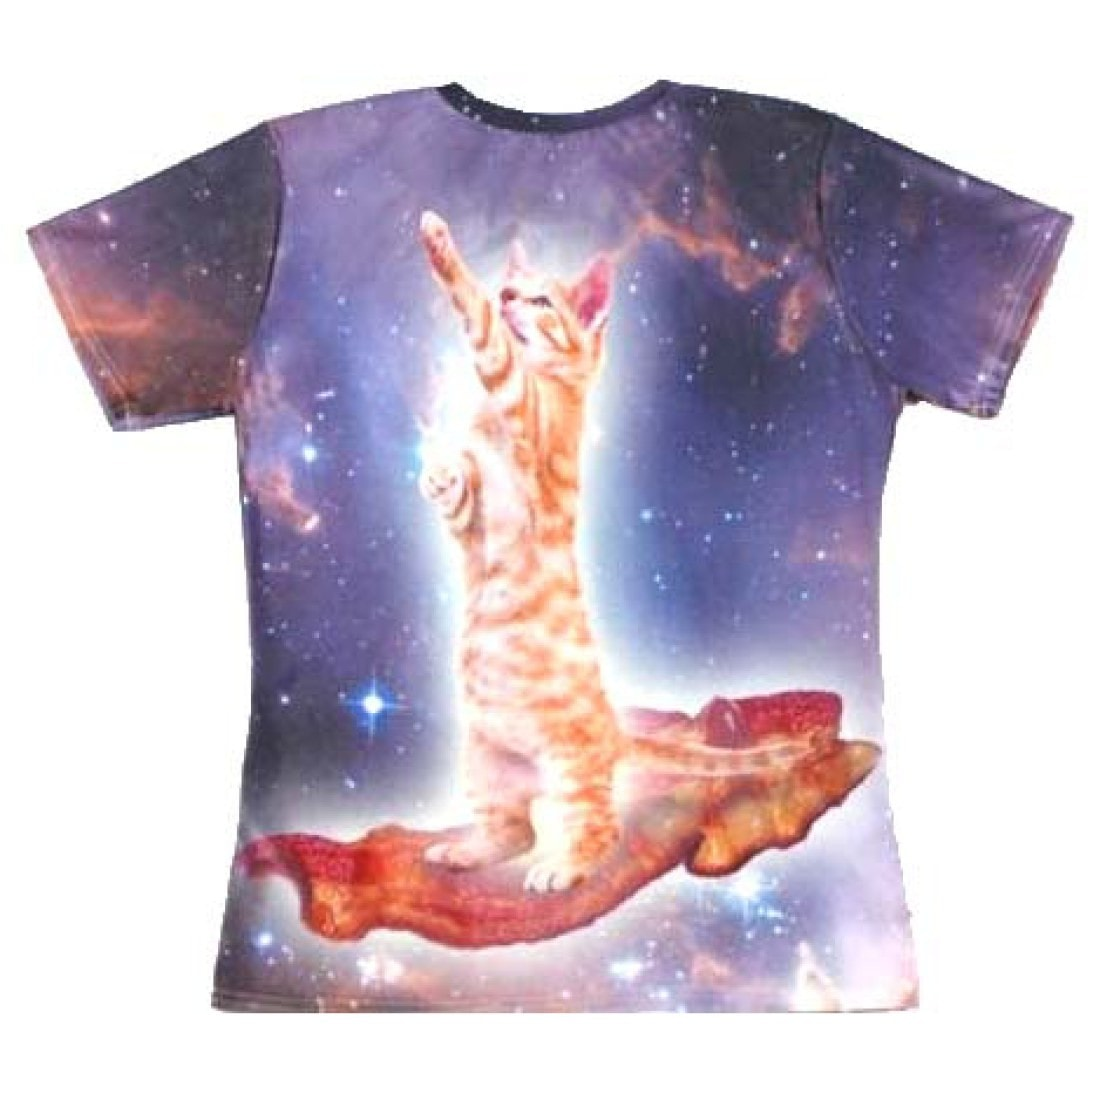 Kitty Cat Riding on Bacon in Space Nebula Graphic Tee